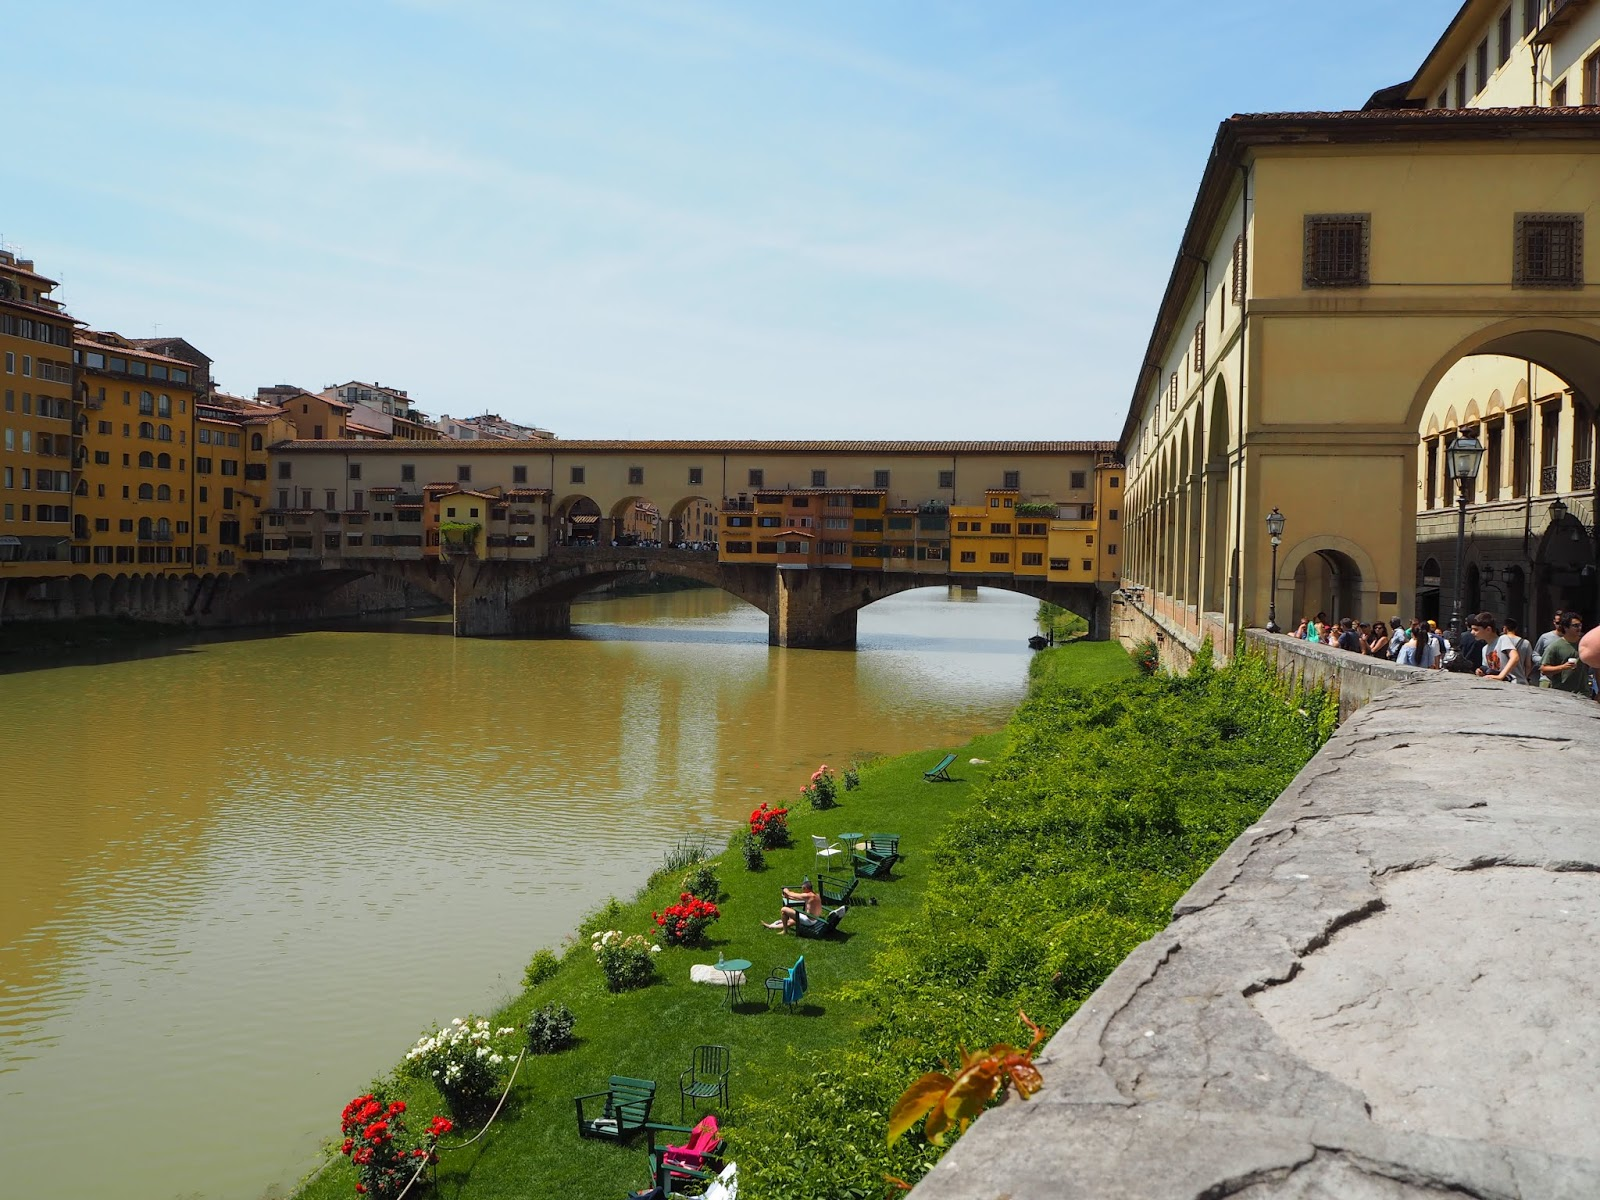 ponte vecchio in beautiful florence